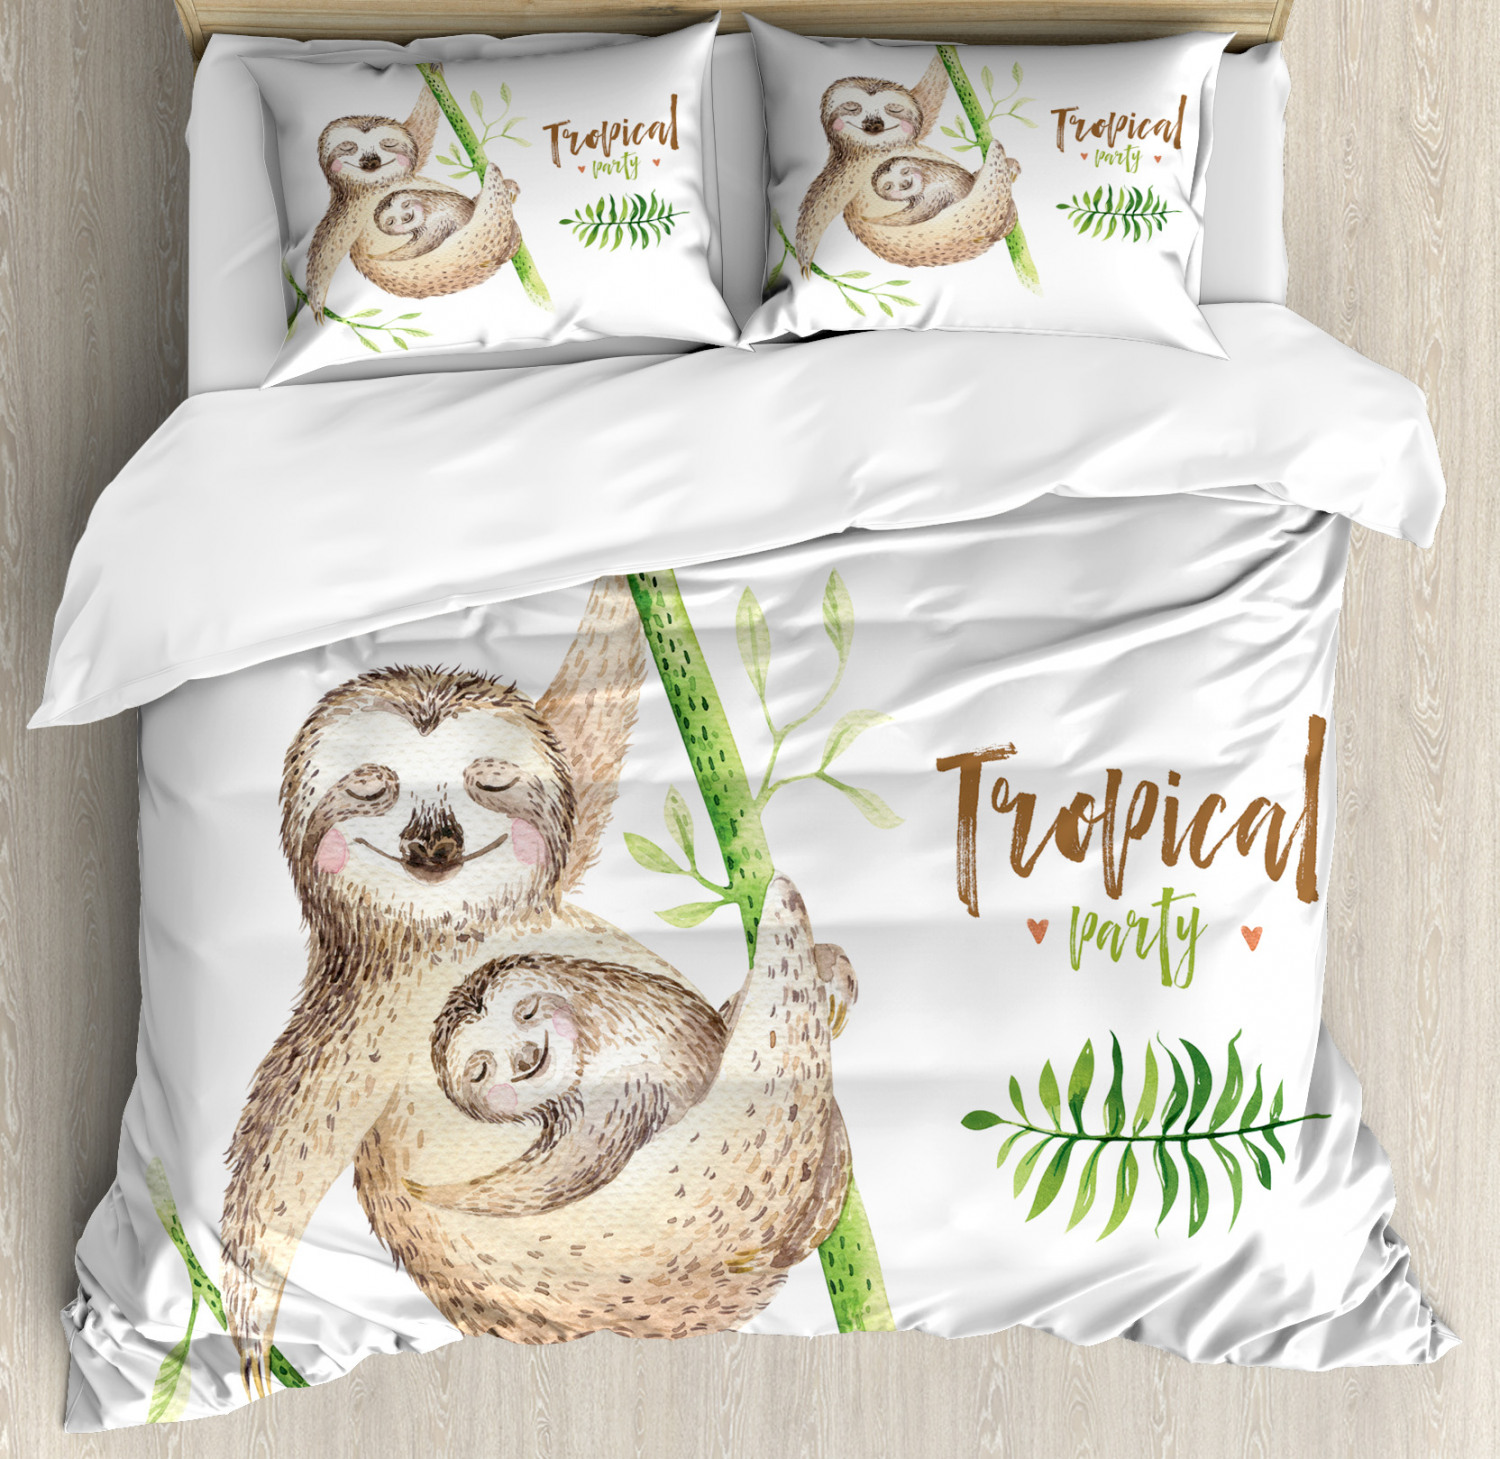 Sloth Duvet Cover Set with Pillow Shams Happy Family Boho Style Print